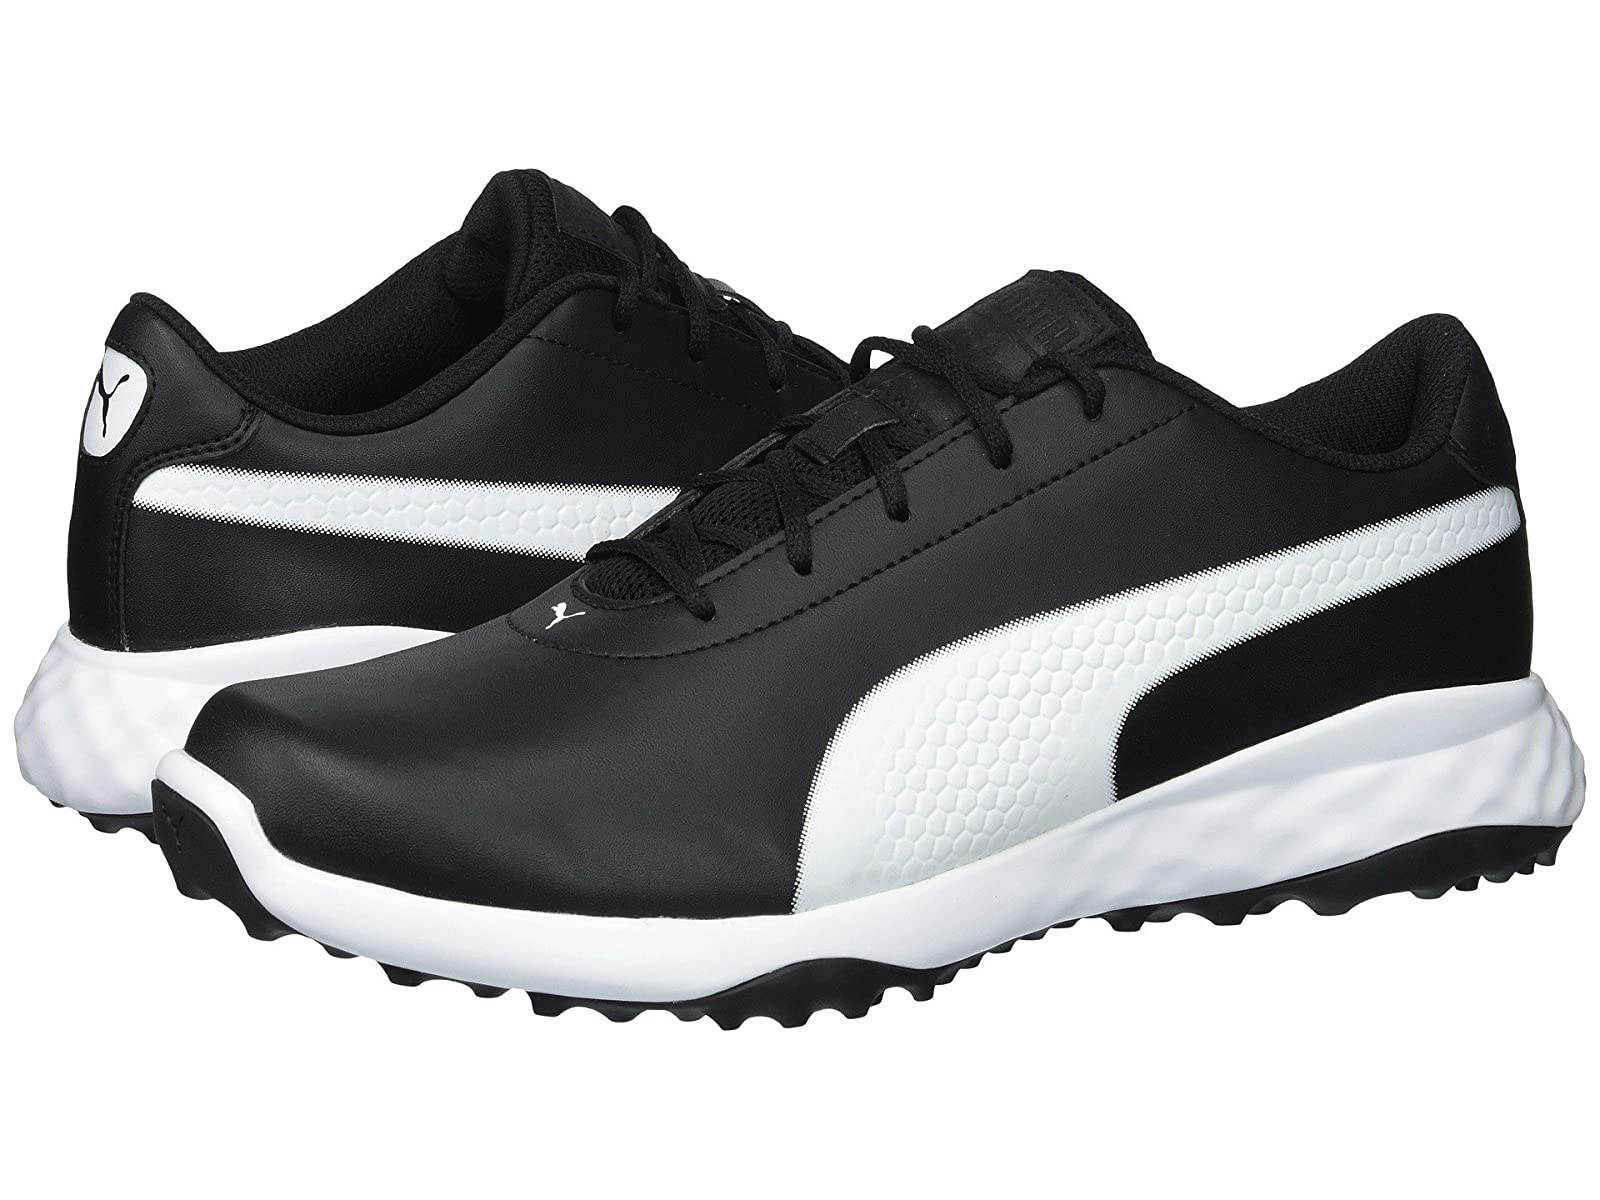 PUMA Golf Grip Fusion ClassicAtmospheric grades have affordable shoes